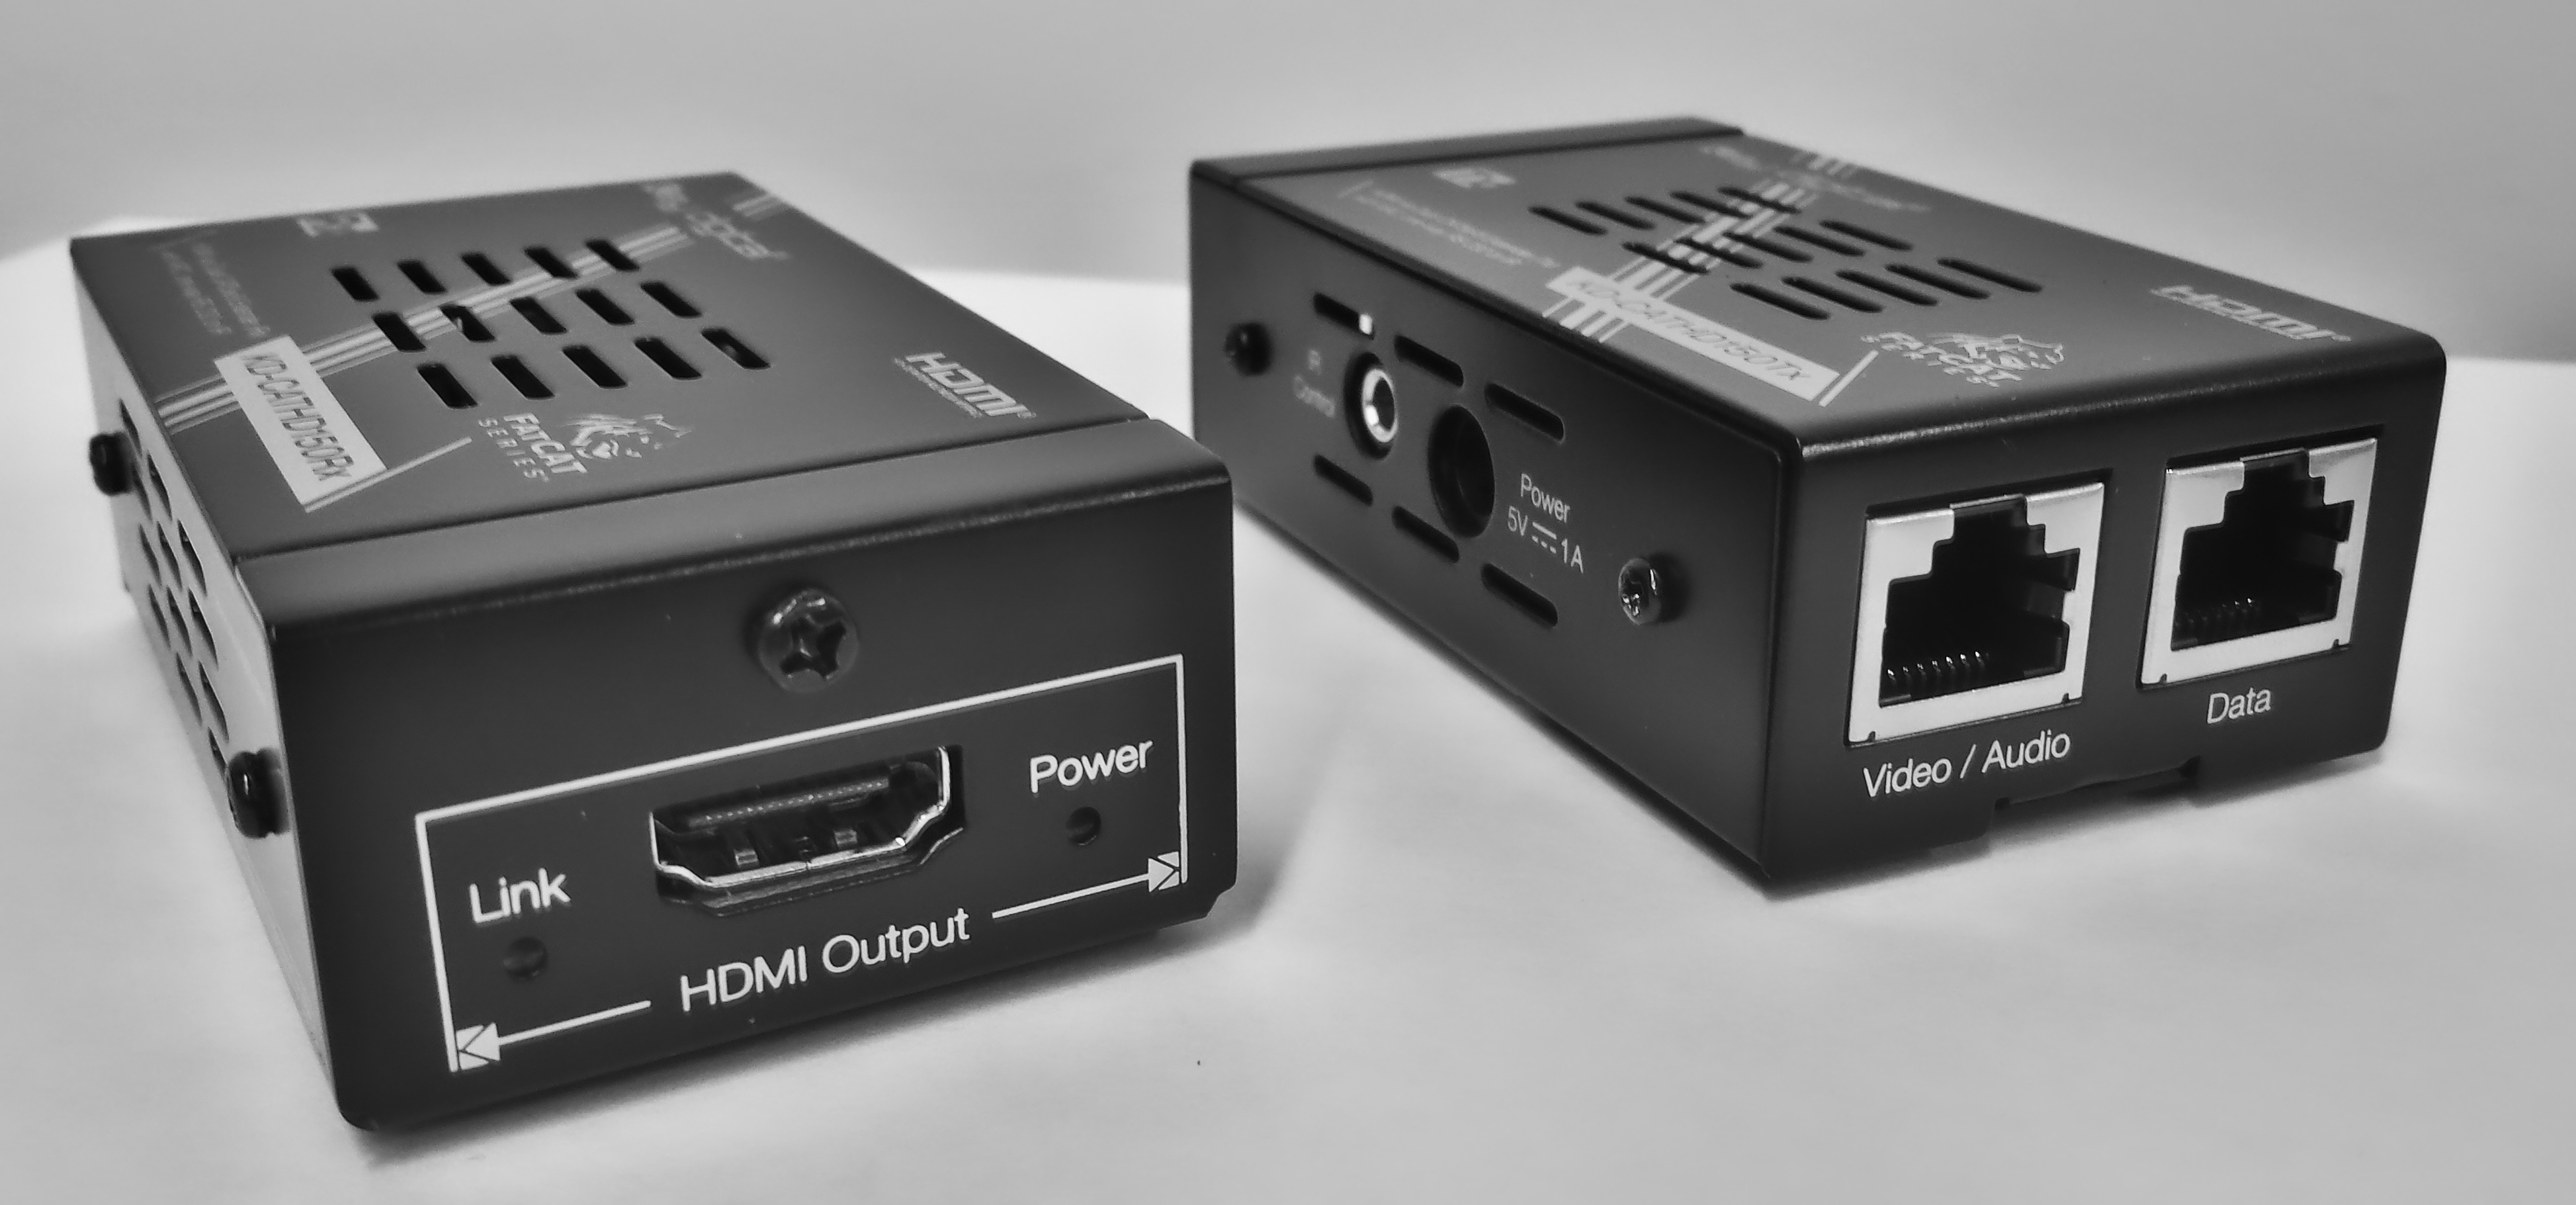 hdmi extenders don t pre wire with hdmi rh pureimage ca Install in Wall HDMI Cable HDMI Cable Wall Plate